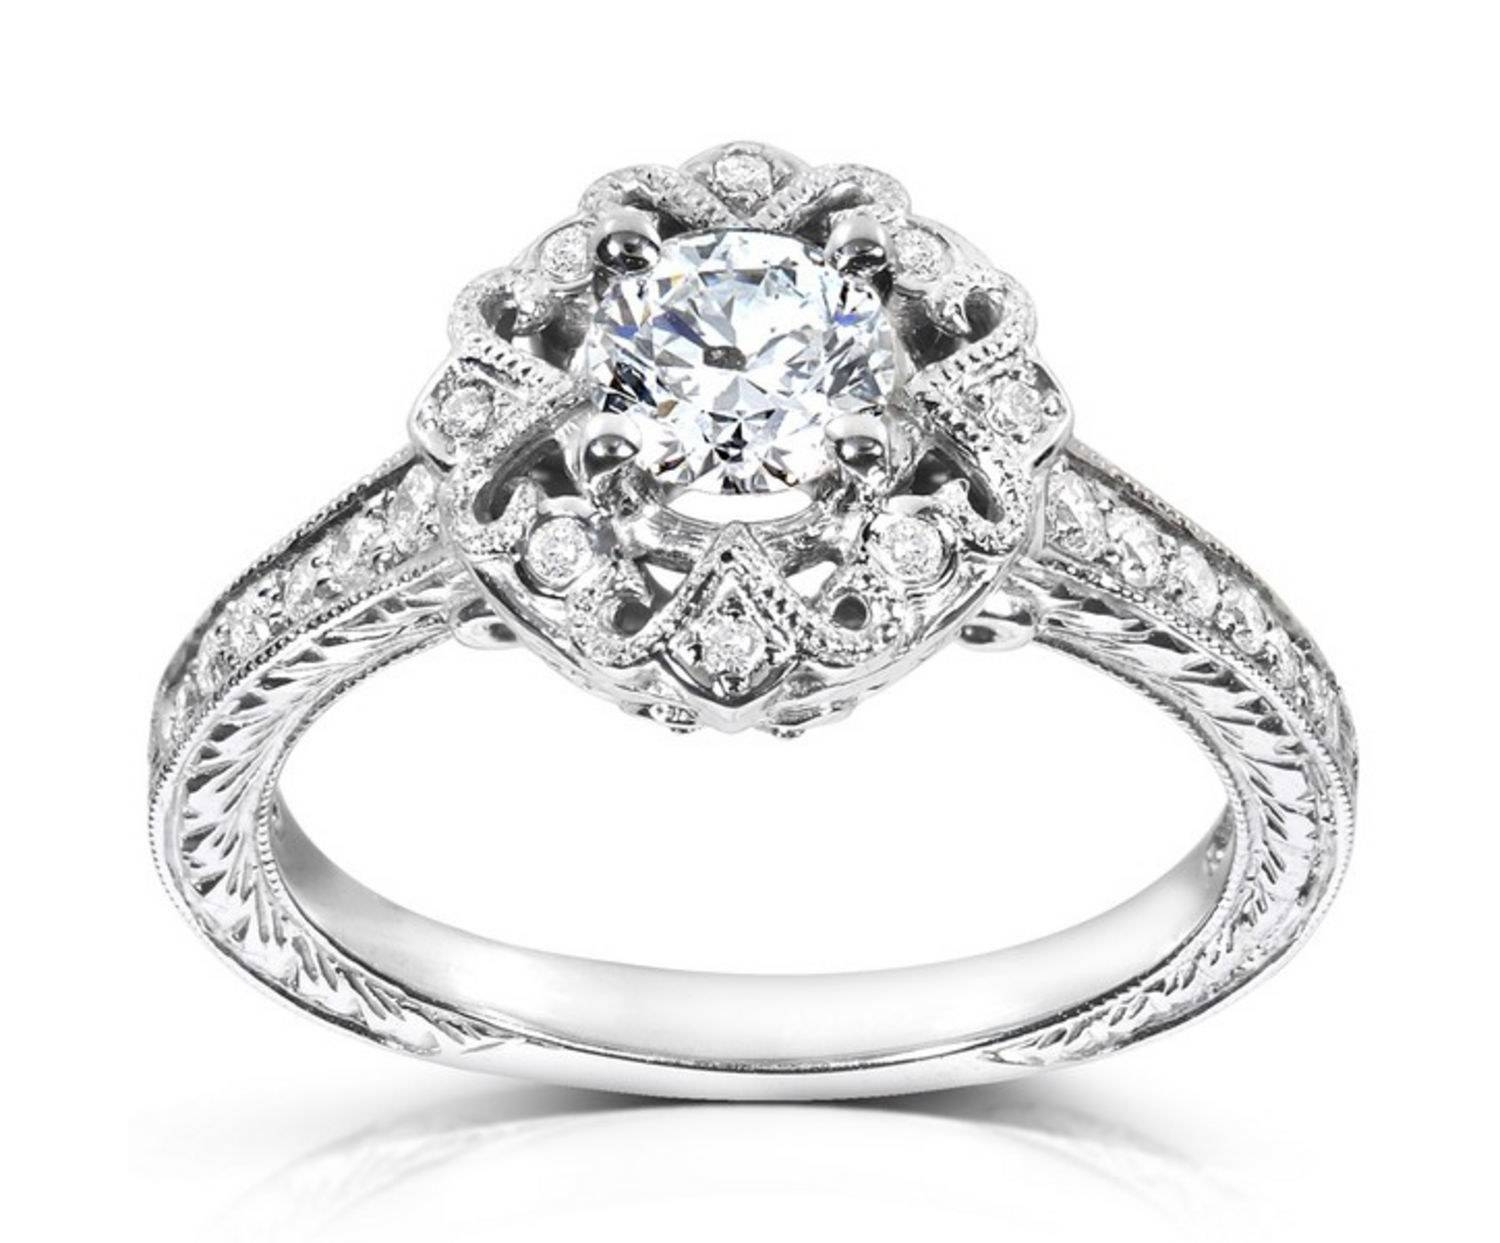 Wedding Rings : Engagement Rings Princess Cut Kay Jewelers Wedding Pertaining To 5 Diamond Engagement Rings (View 15 of 15)